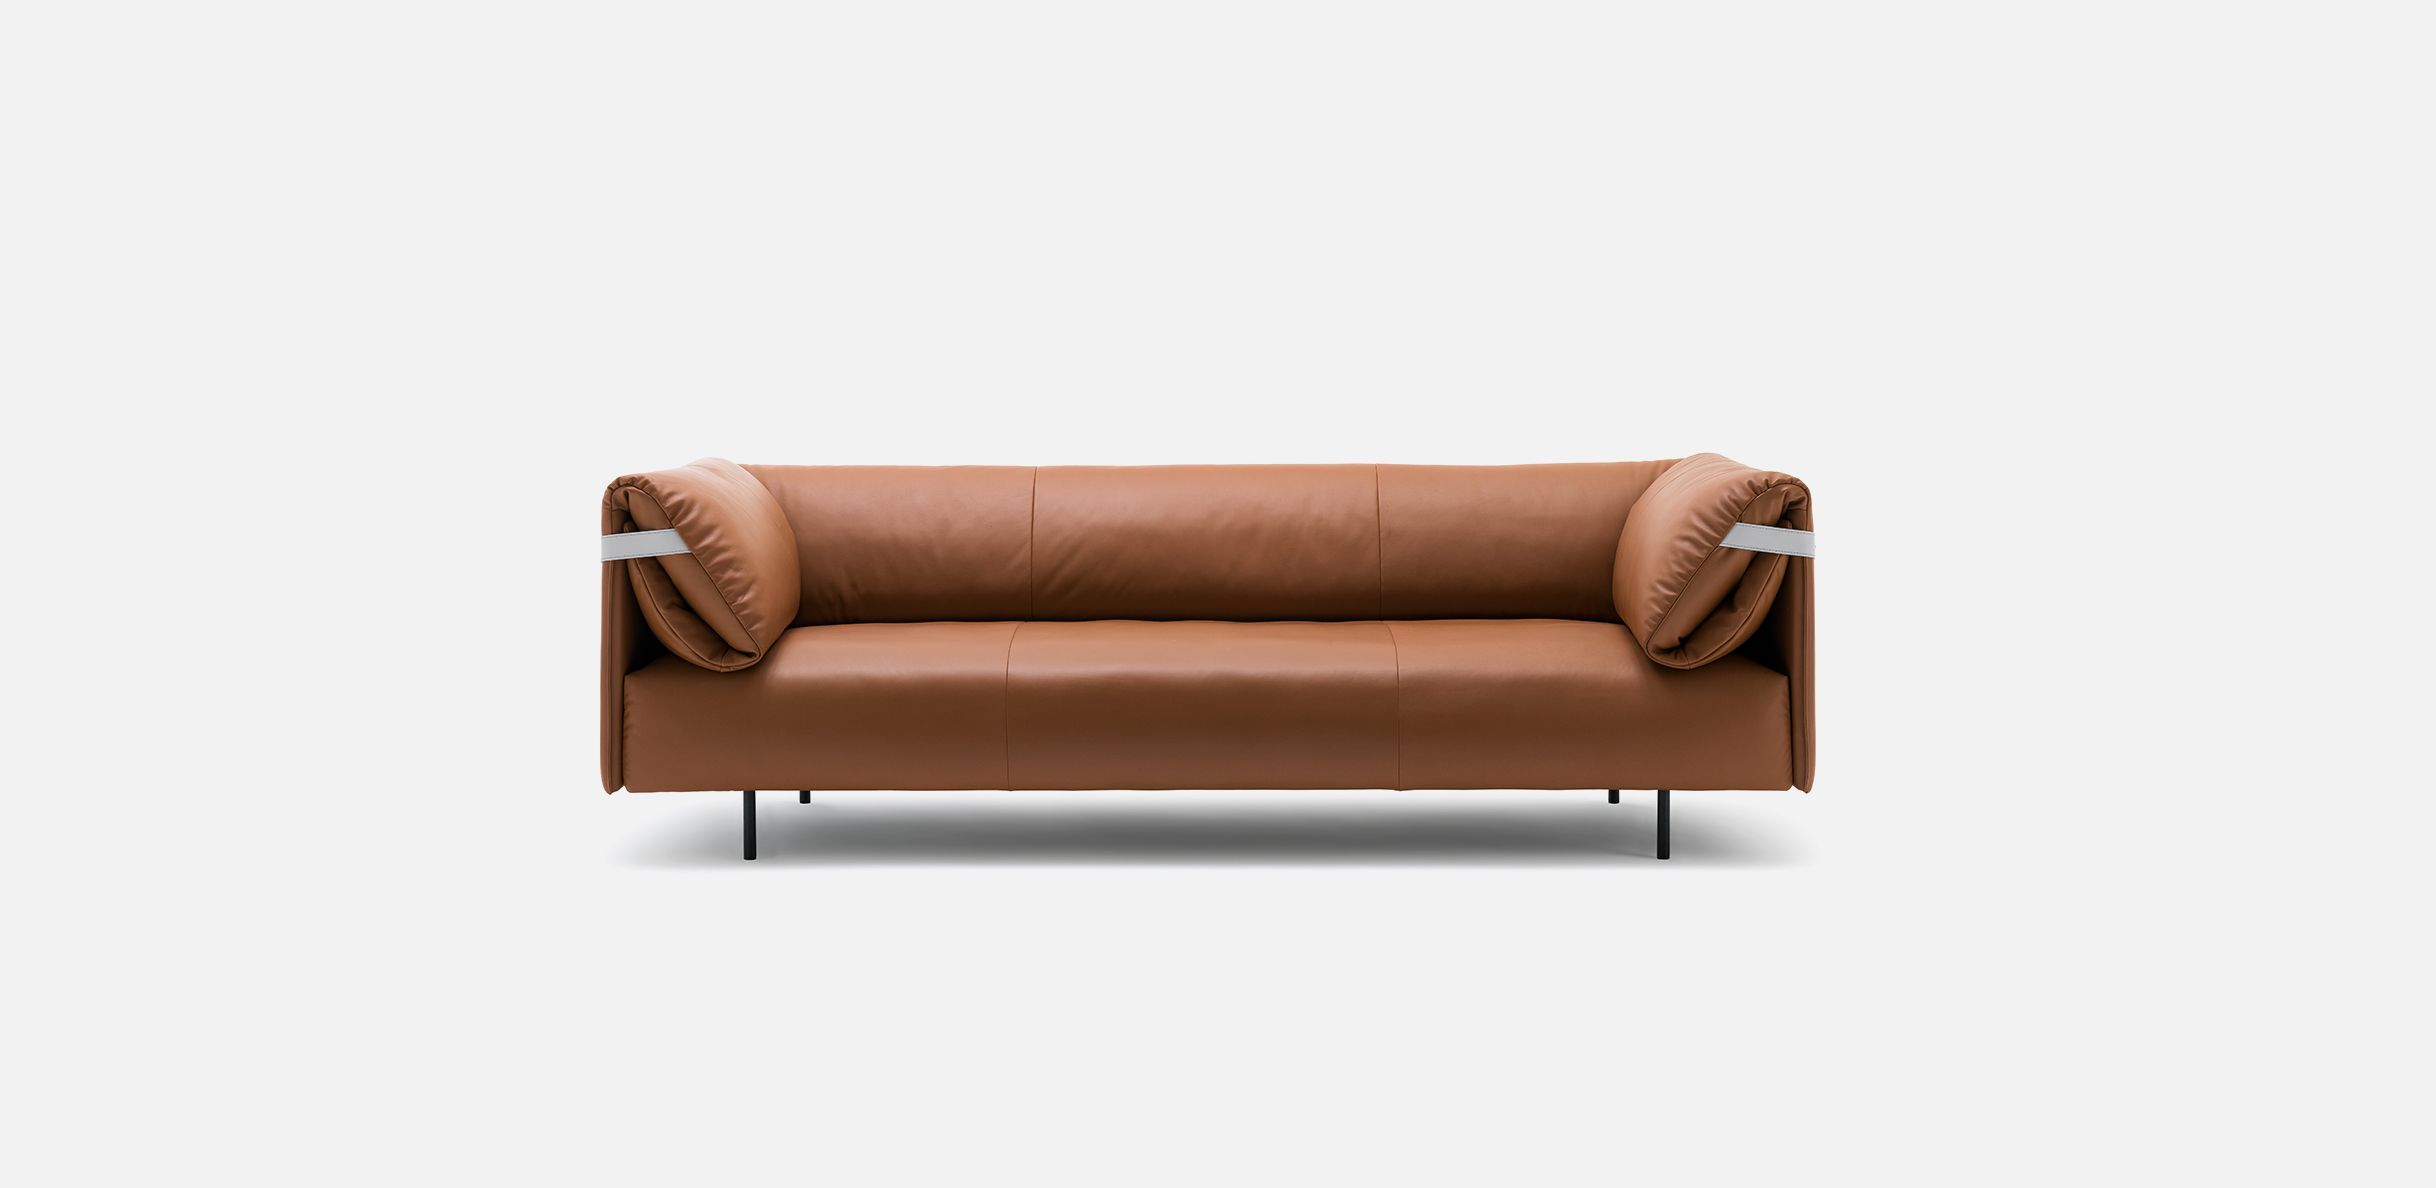 Alma - Rolf benz big sofa ...